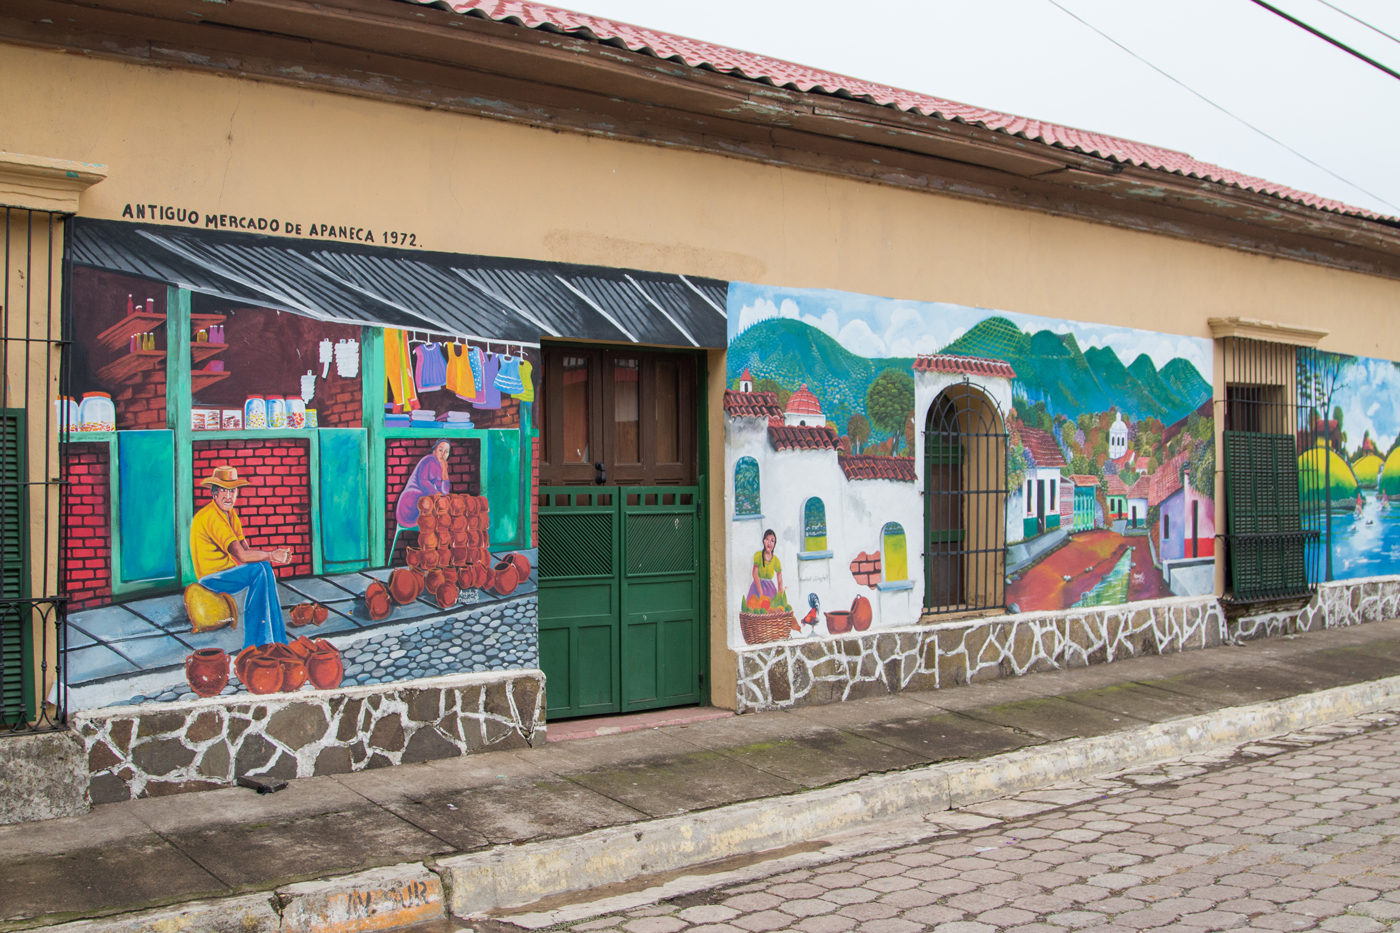 Painted murals